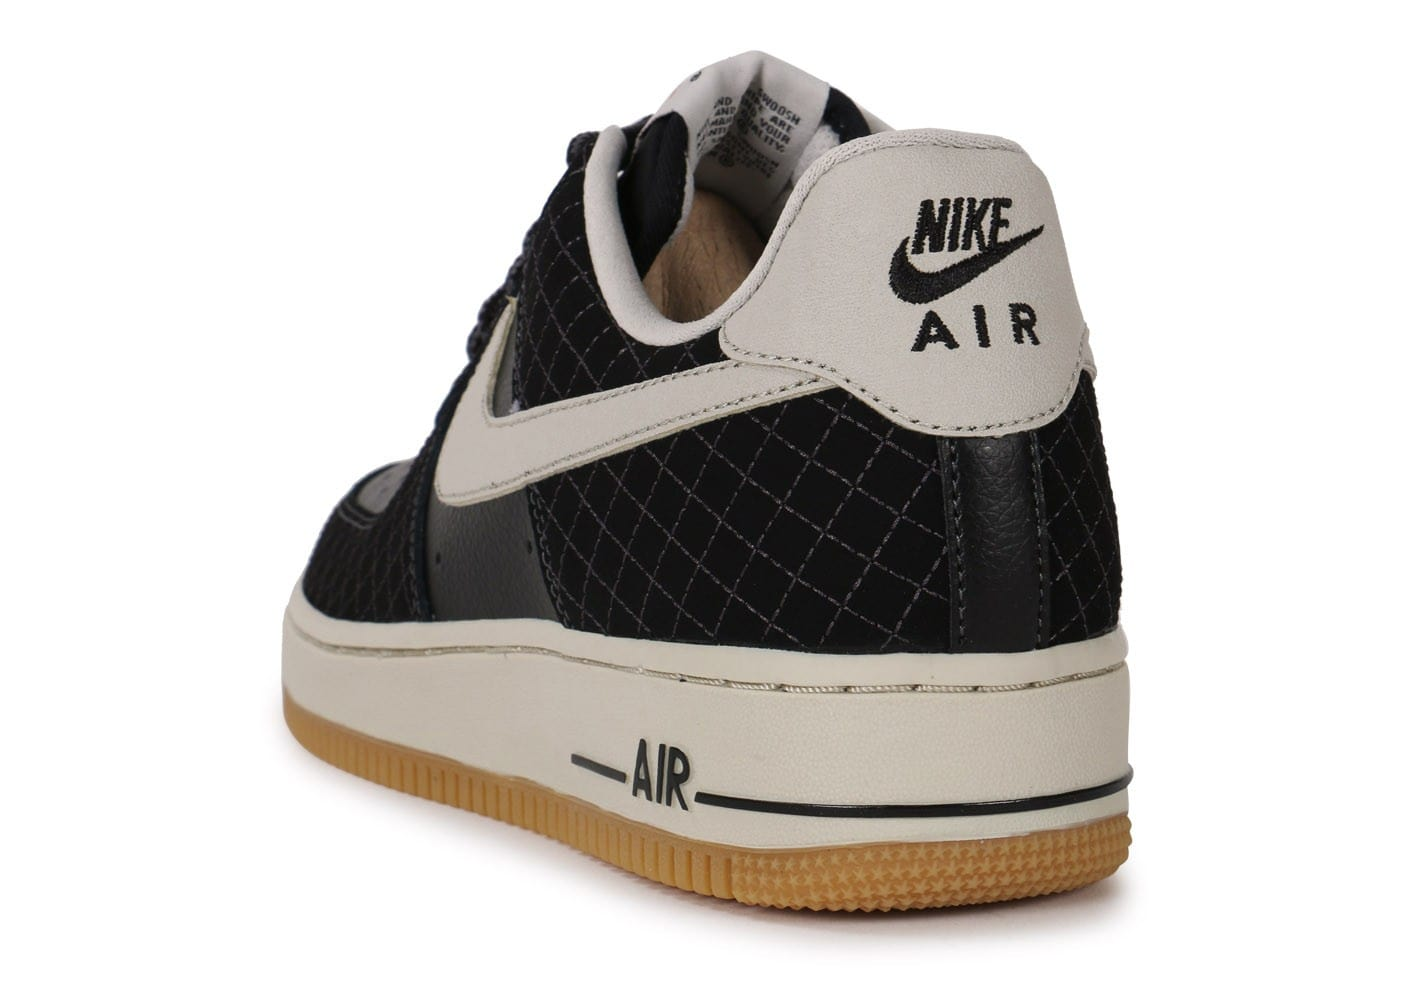 Image Of Nike Air Force 1 Low Premium Sp Quot Hurache Quot Pictures to ...